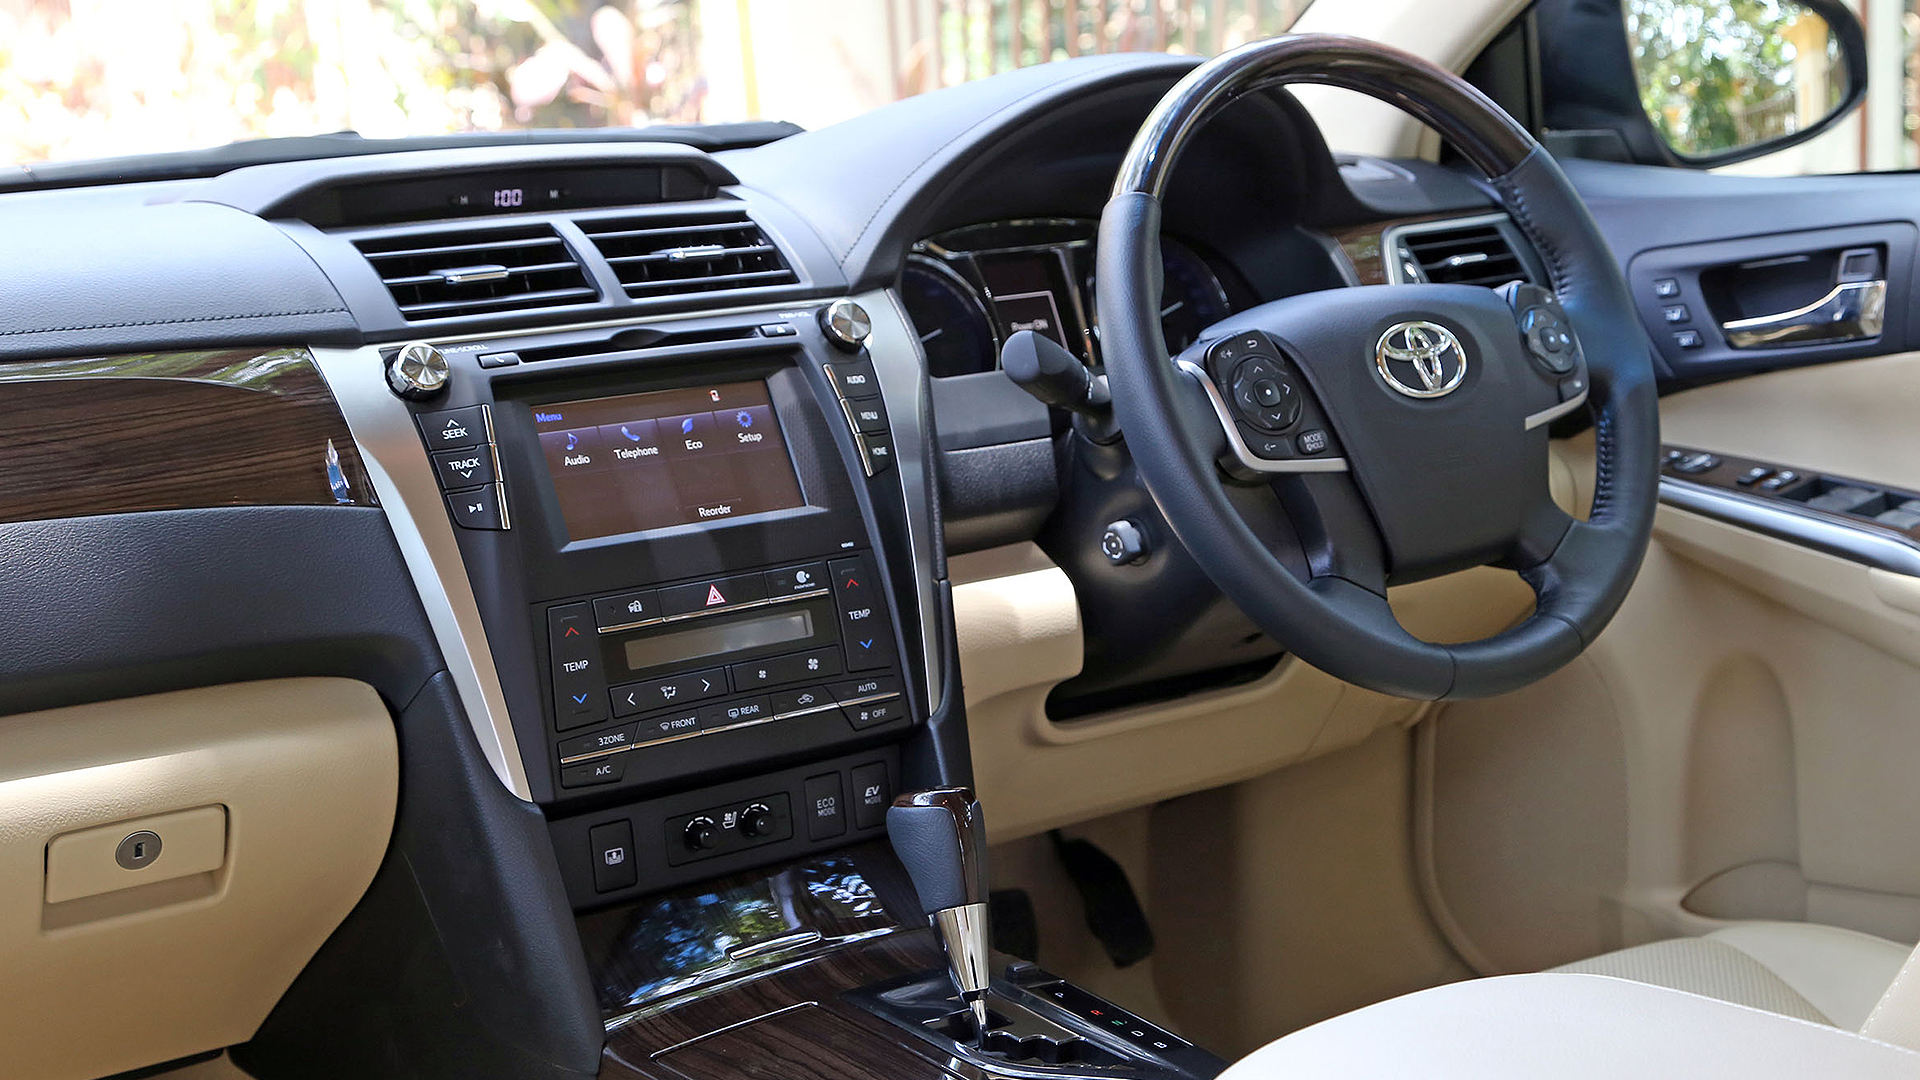 toyota camry 2015 hybrid price mileage reviews specification gallery overdrive. Black Bedroom Furniture Sets. Home Design Ideas